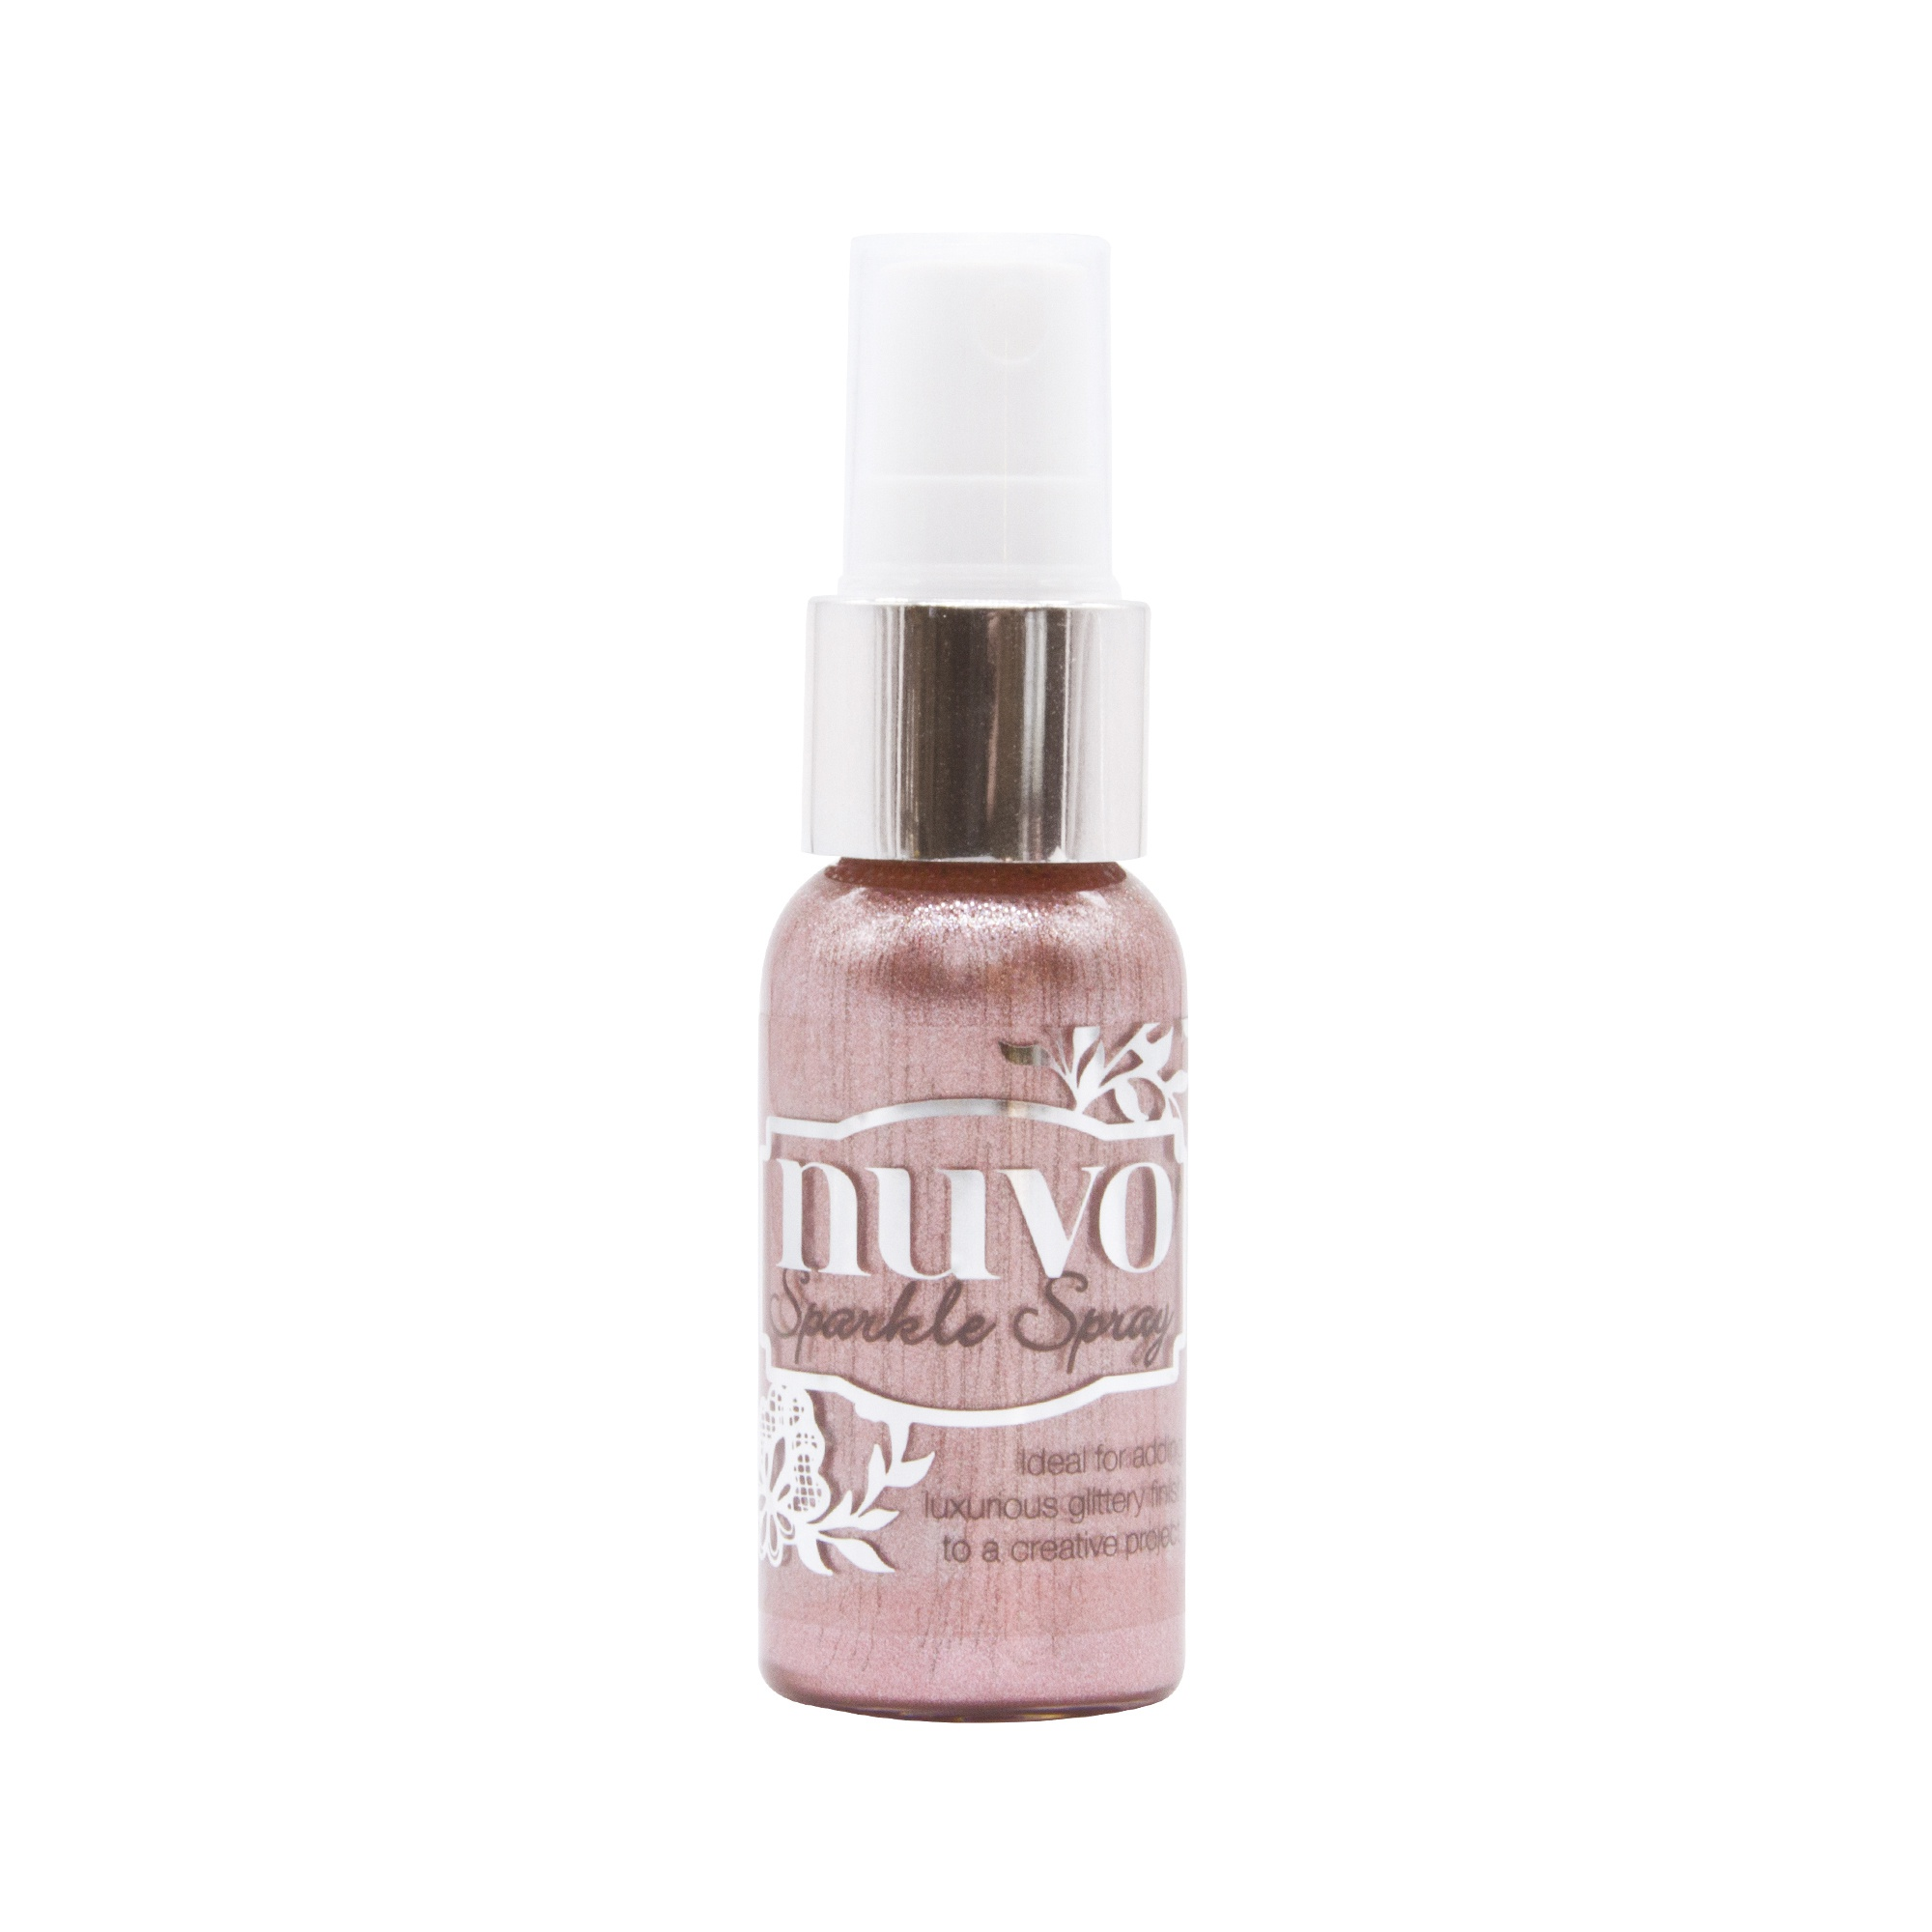 Nuvo Sparkle Spray-Blush Burst